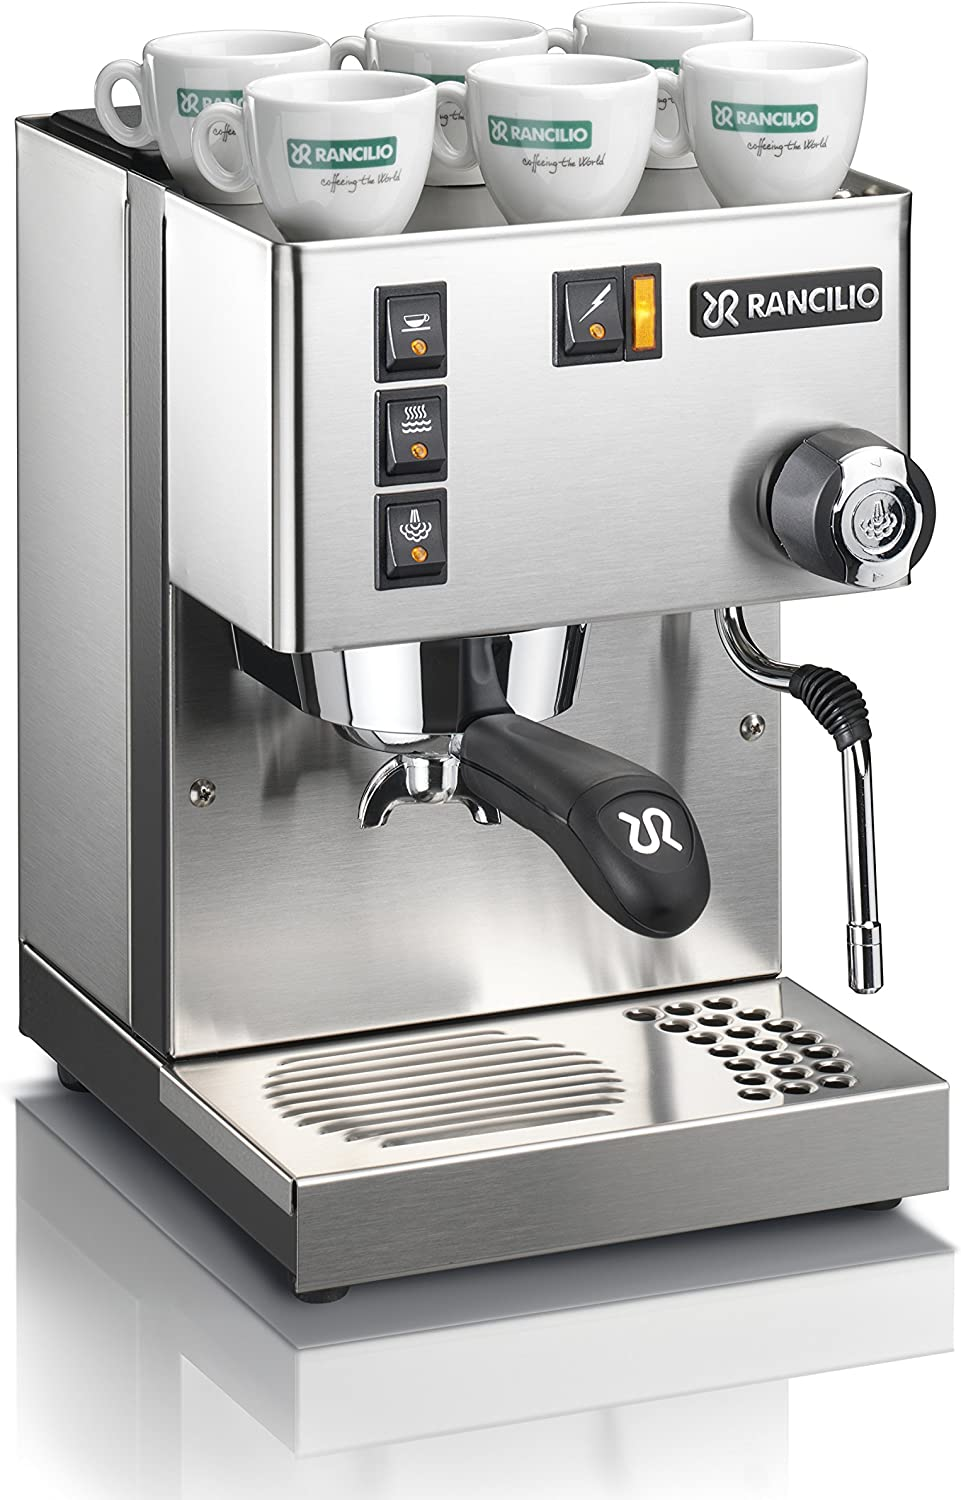 The Best Espresso Machine for Mom - 2021 Ratings & Reviews 8